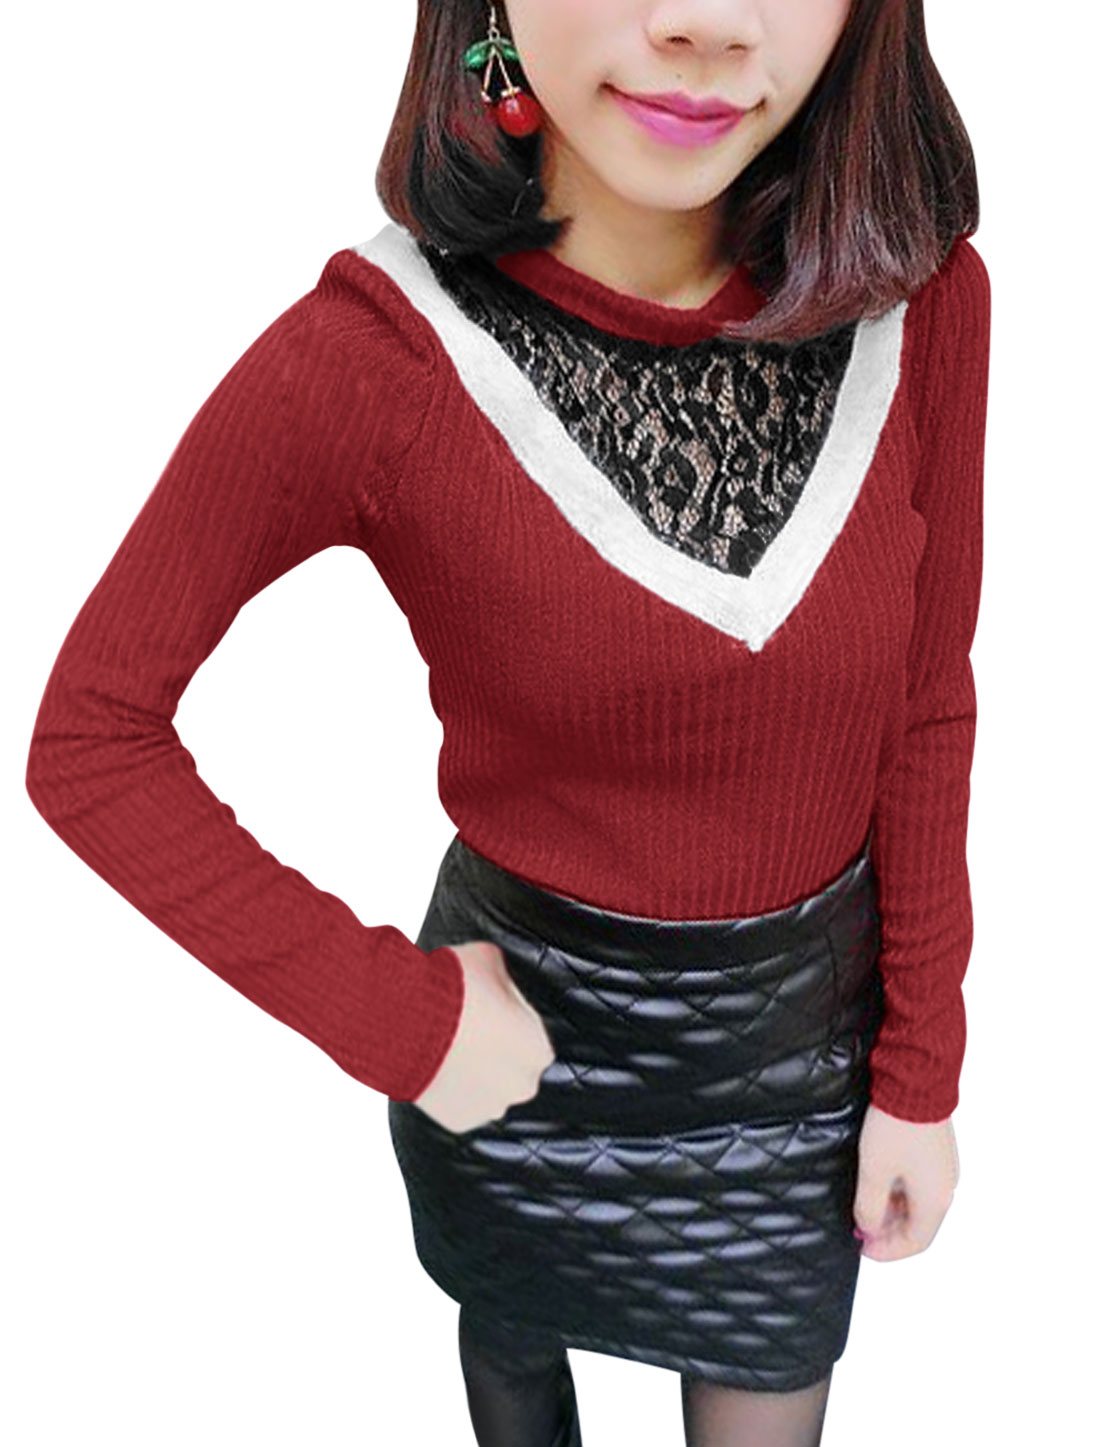 Ladies Crew Neck Lace Panel Pullover Warm Red Knit Shirt XS